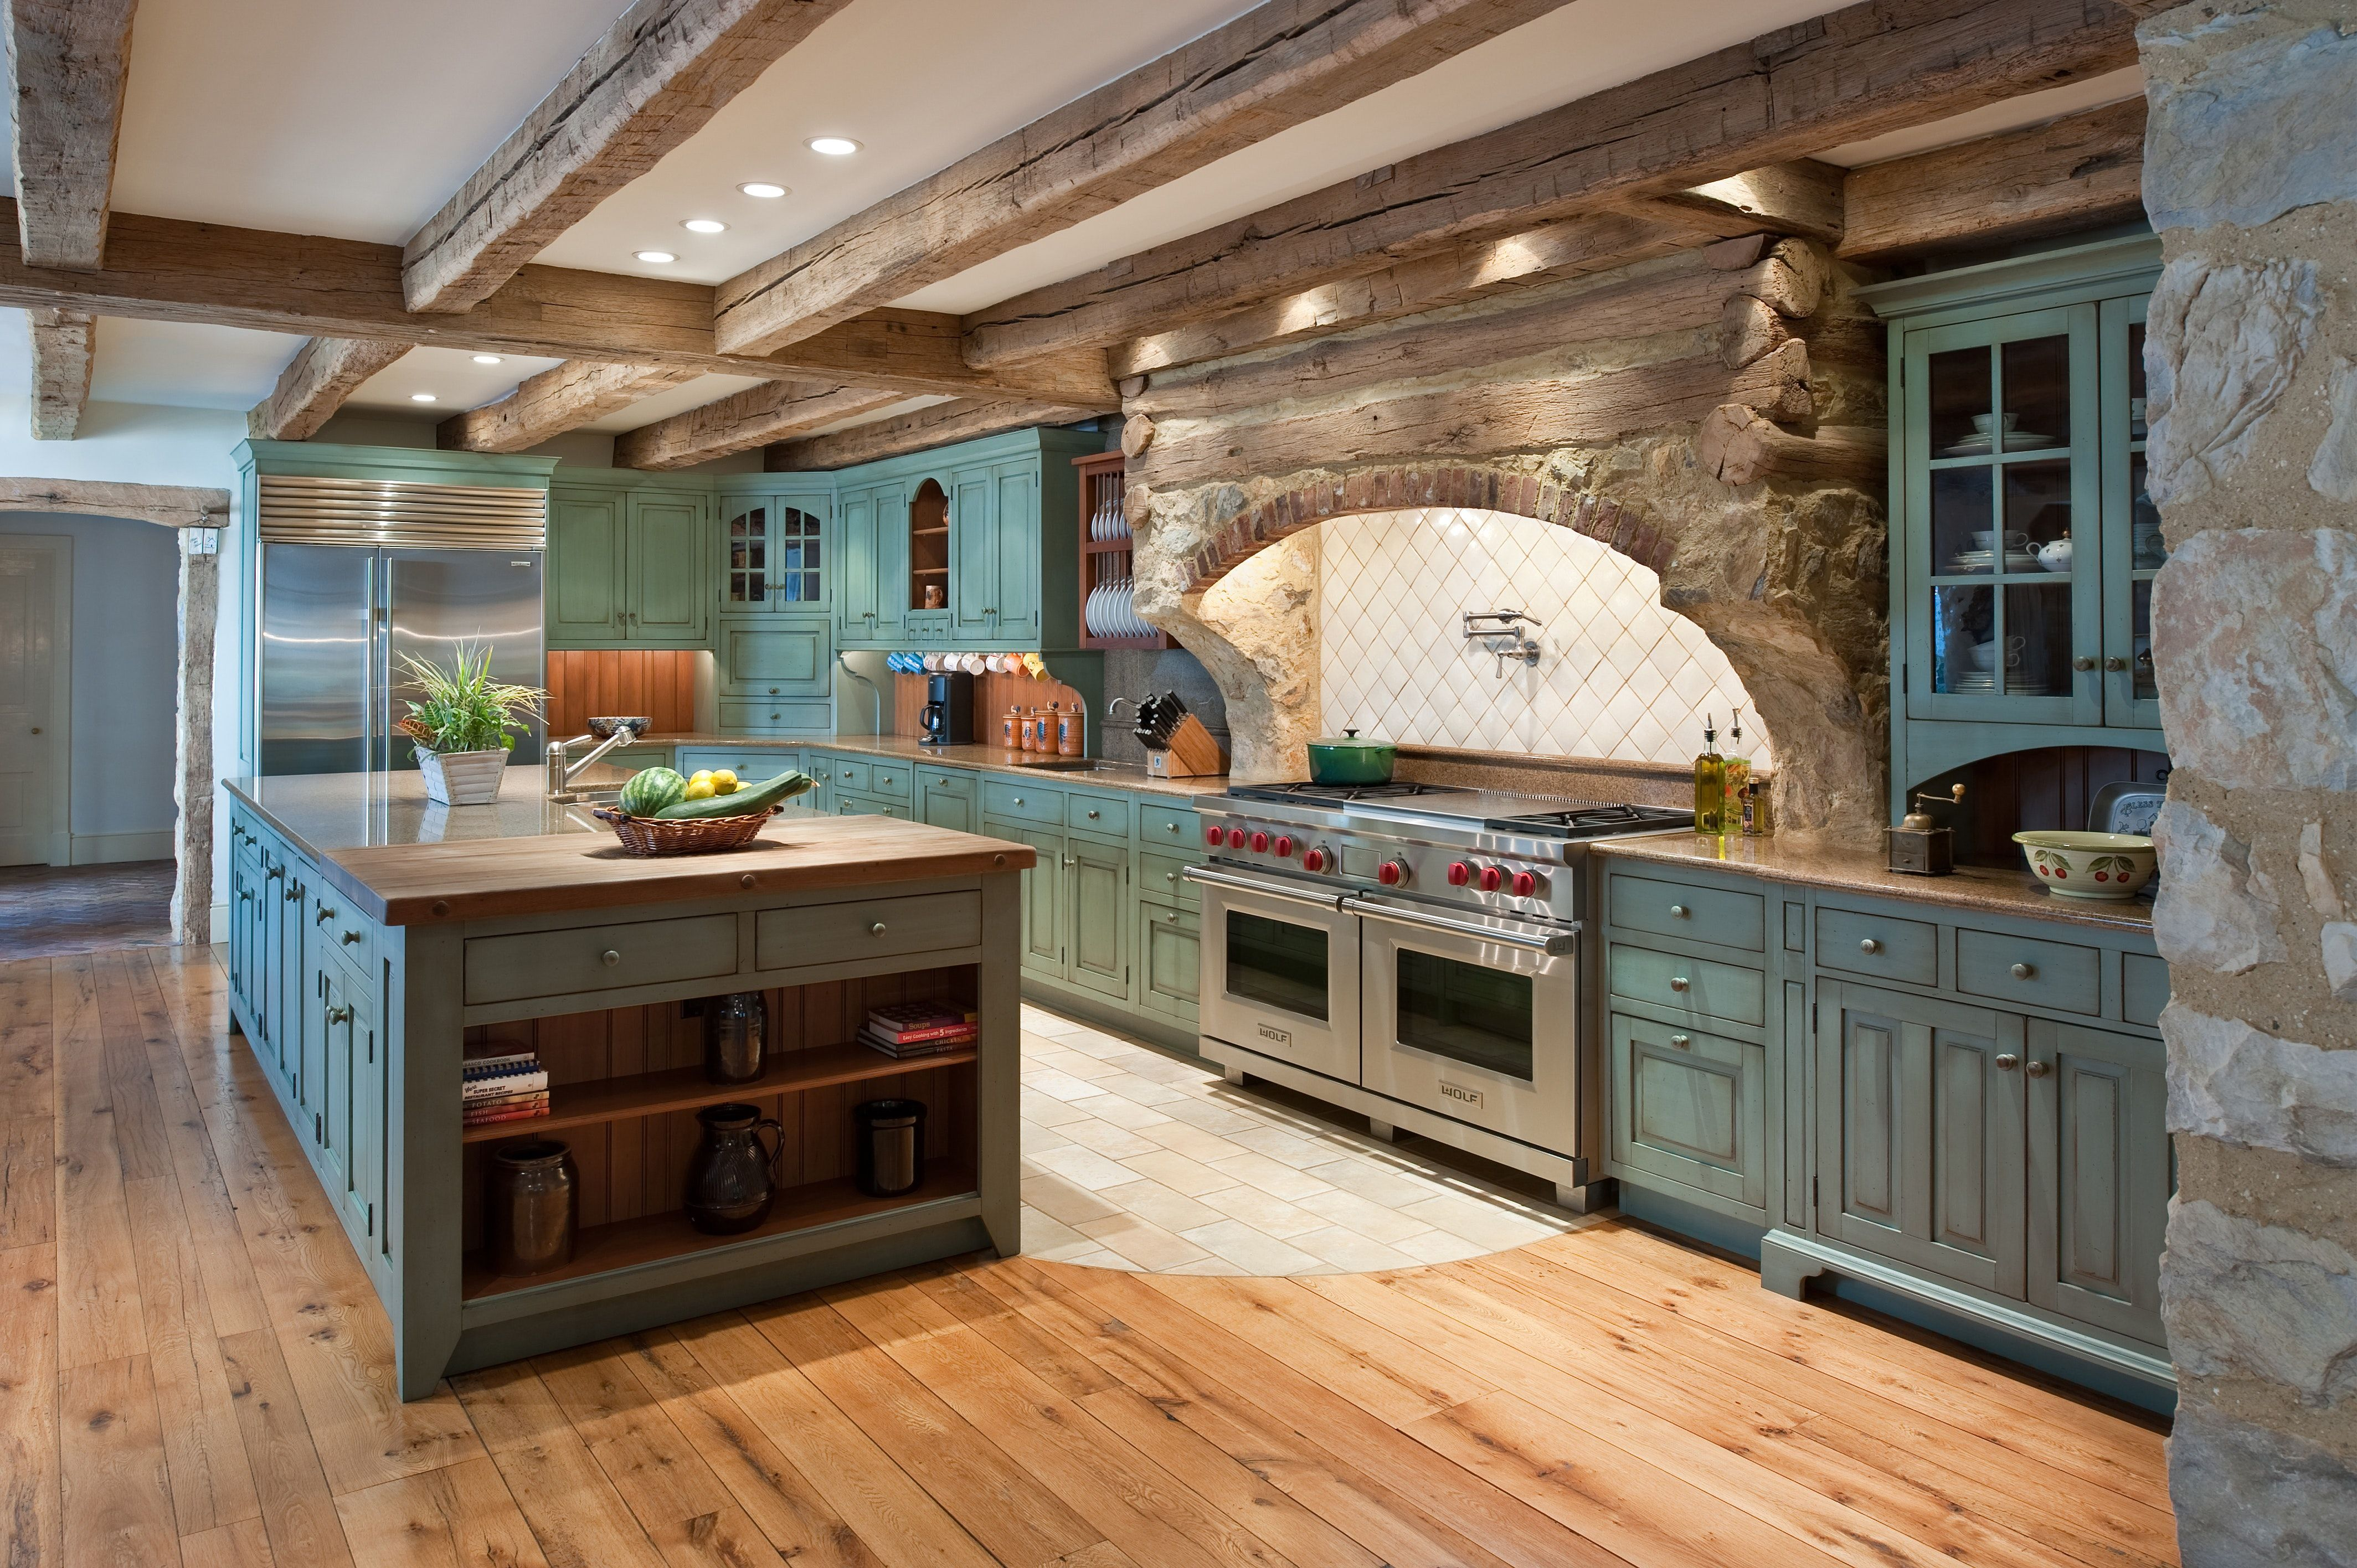 Rustic Farmhouse Kitchen With Custom Wood And Stone Range Hood In